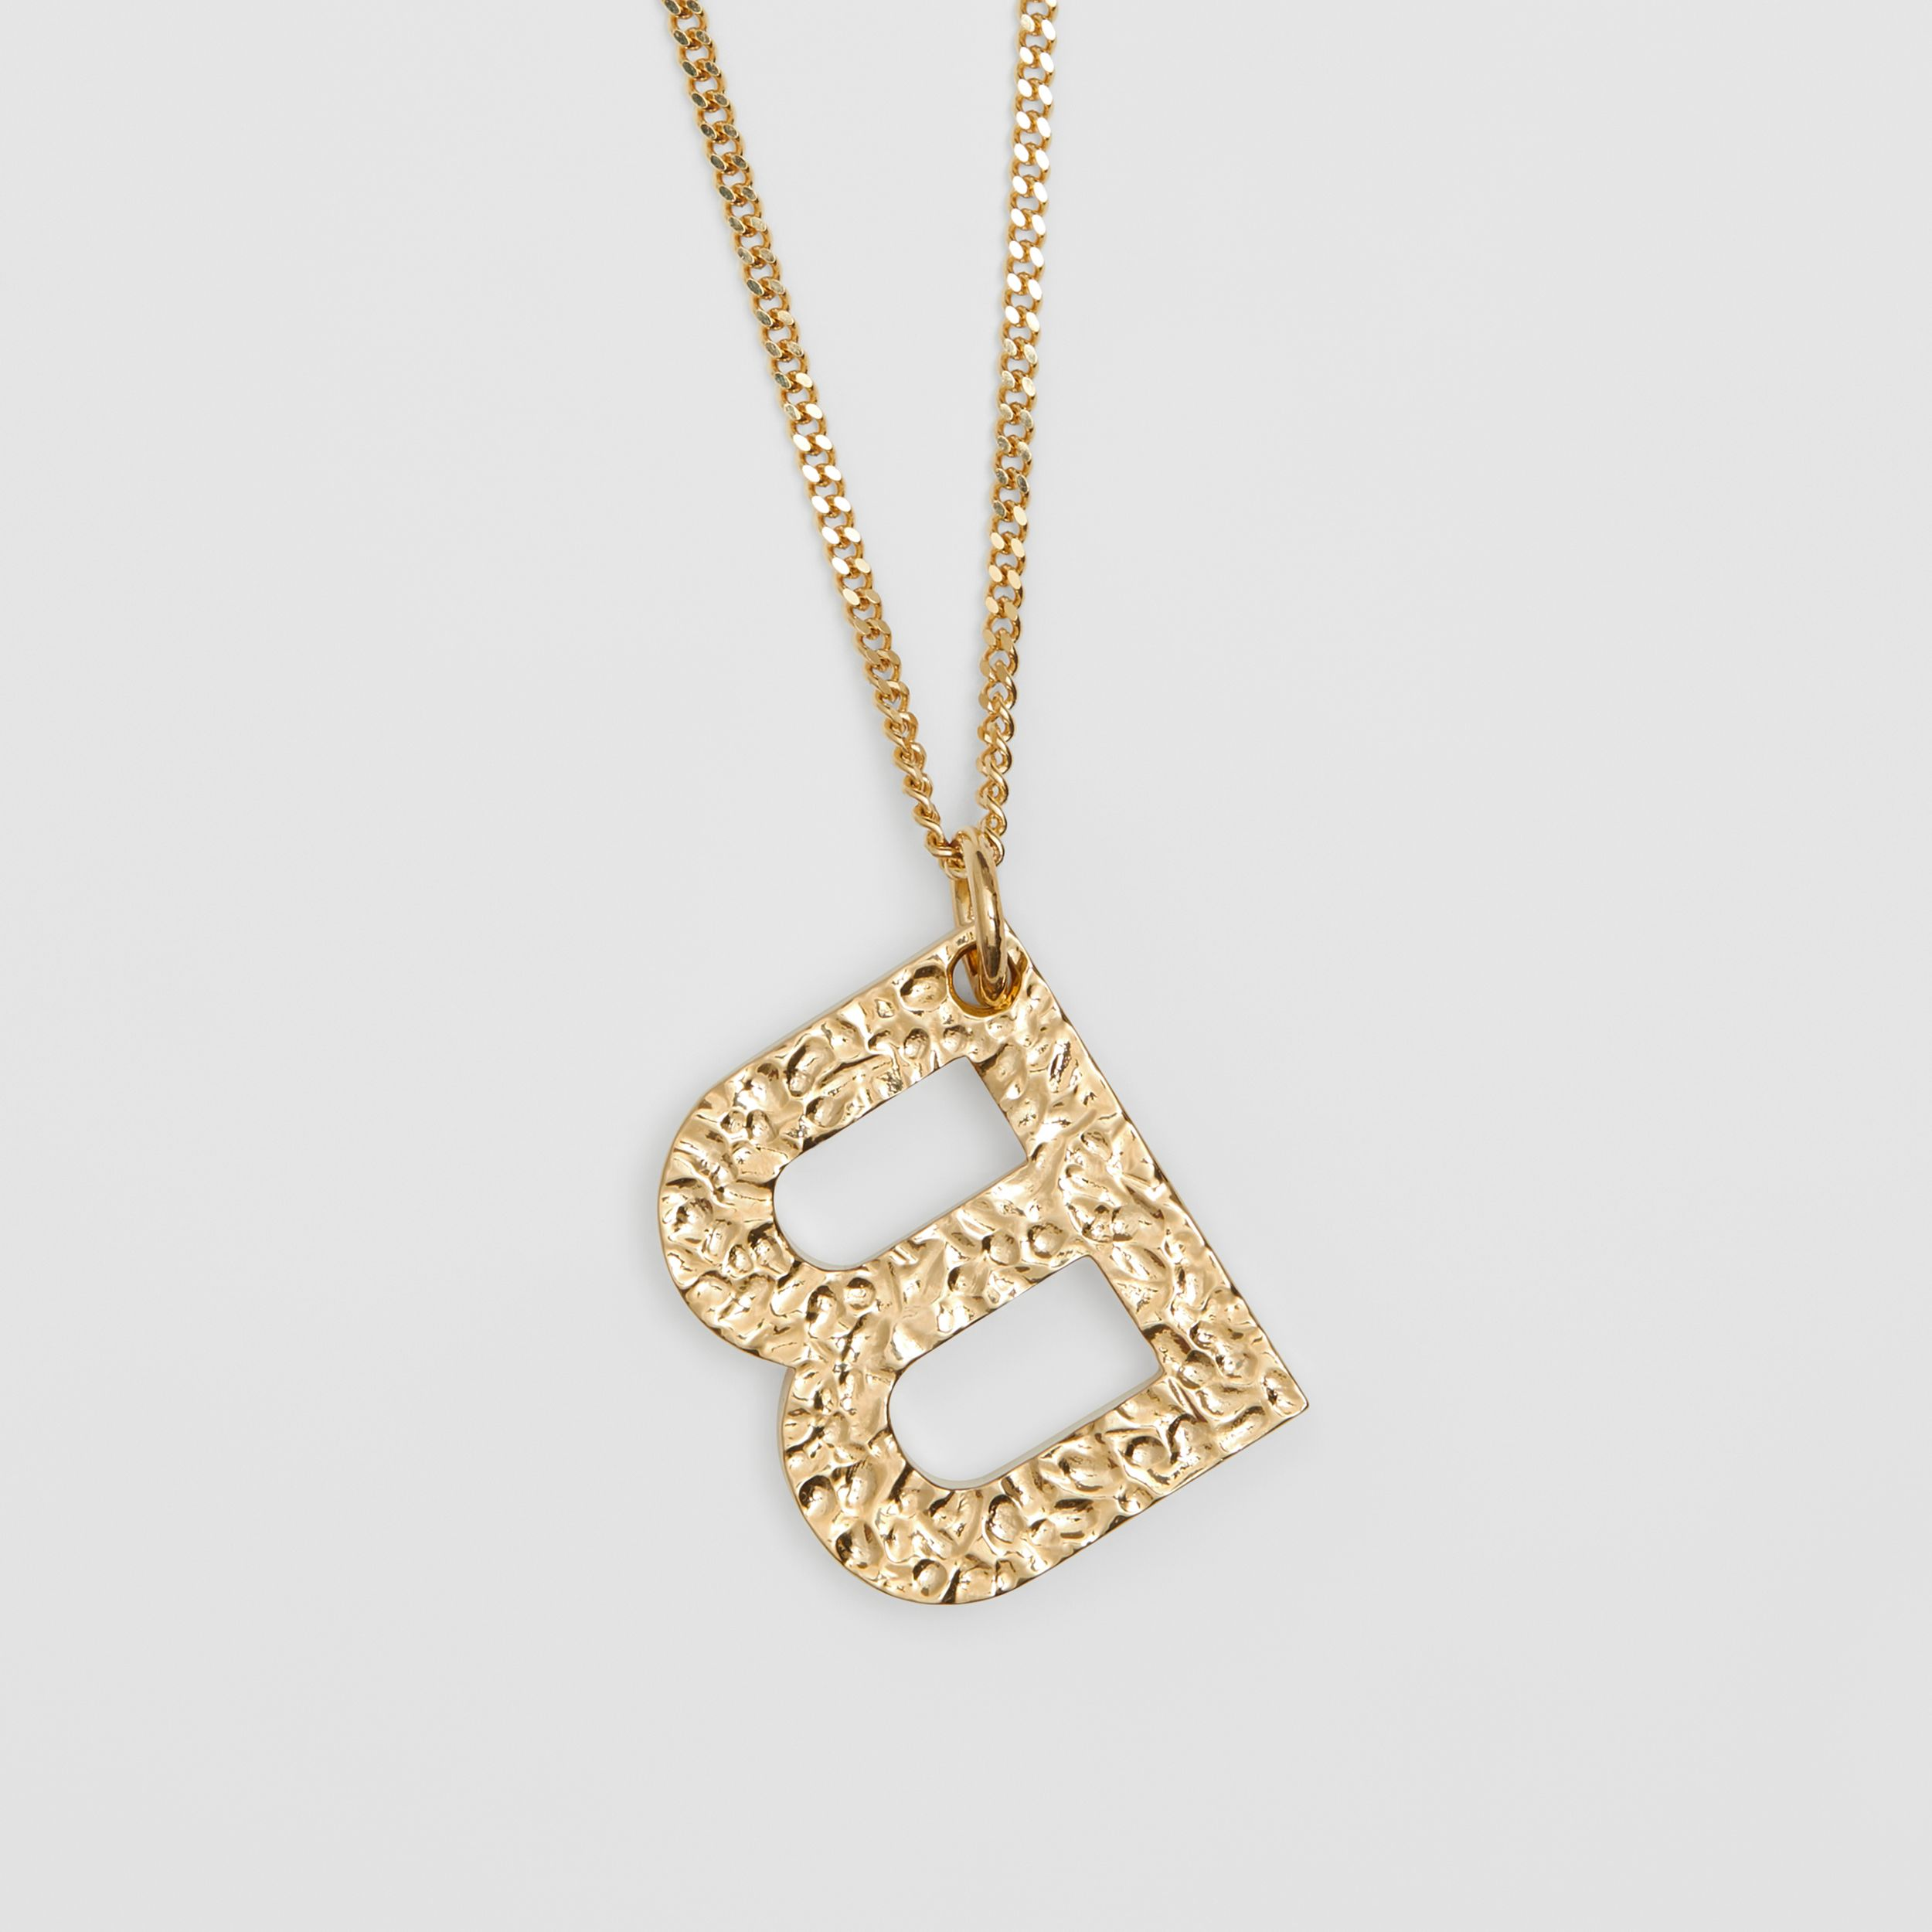 'B' Alphabet Charm Gold-plated Necklace in Light - Women | Burberry United Kingdom - 3